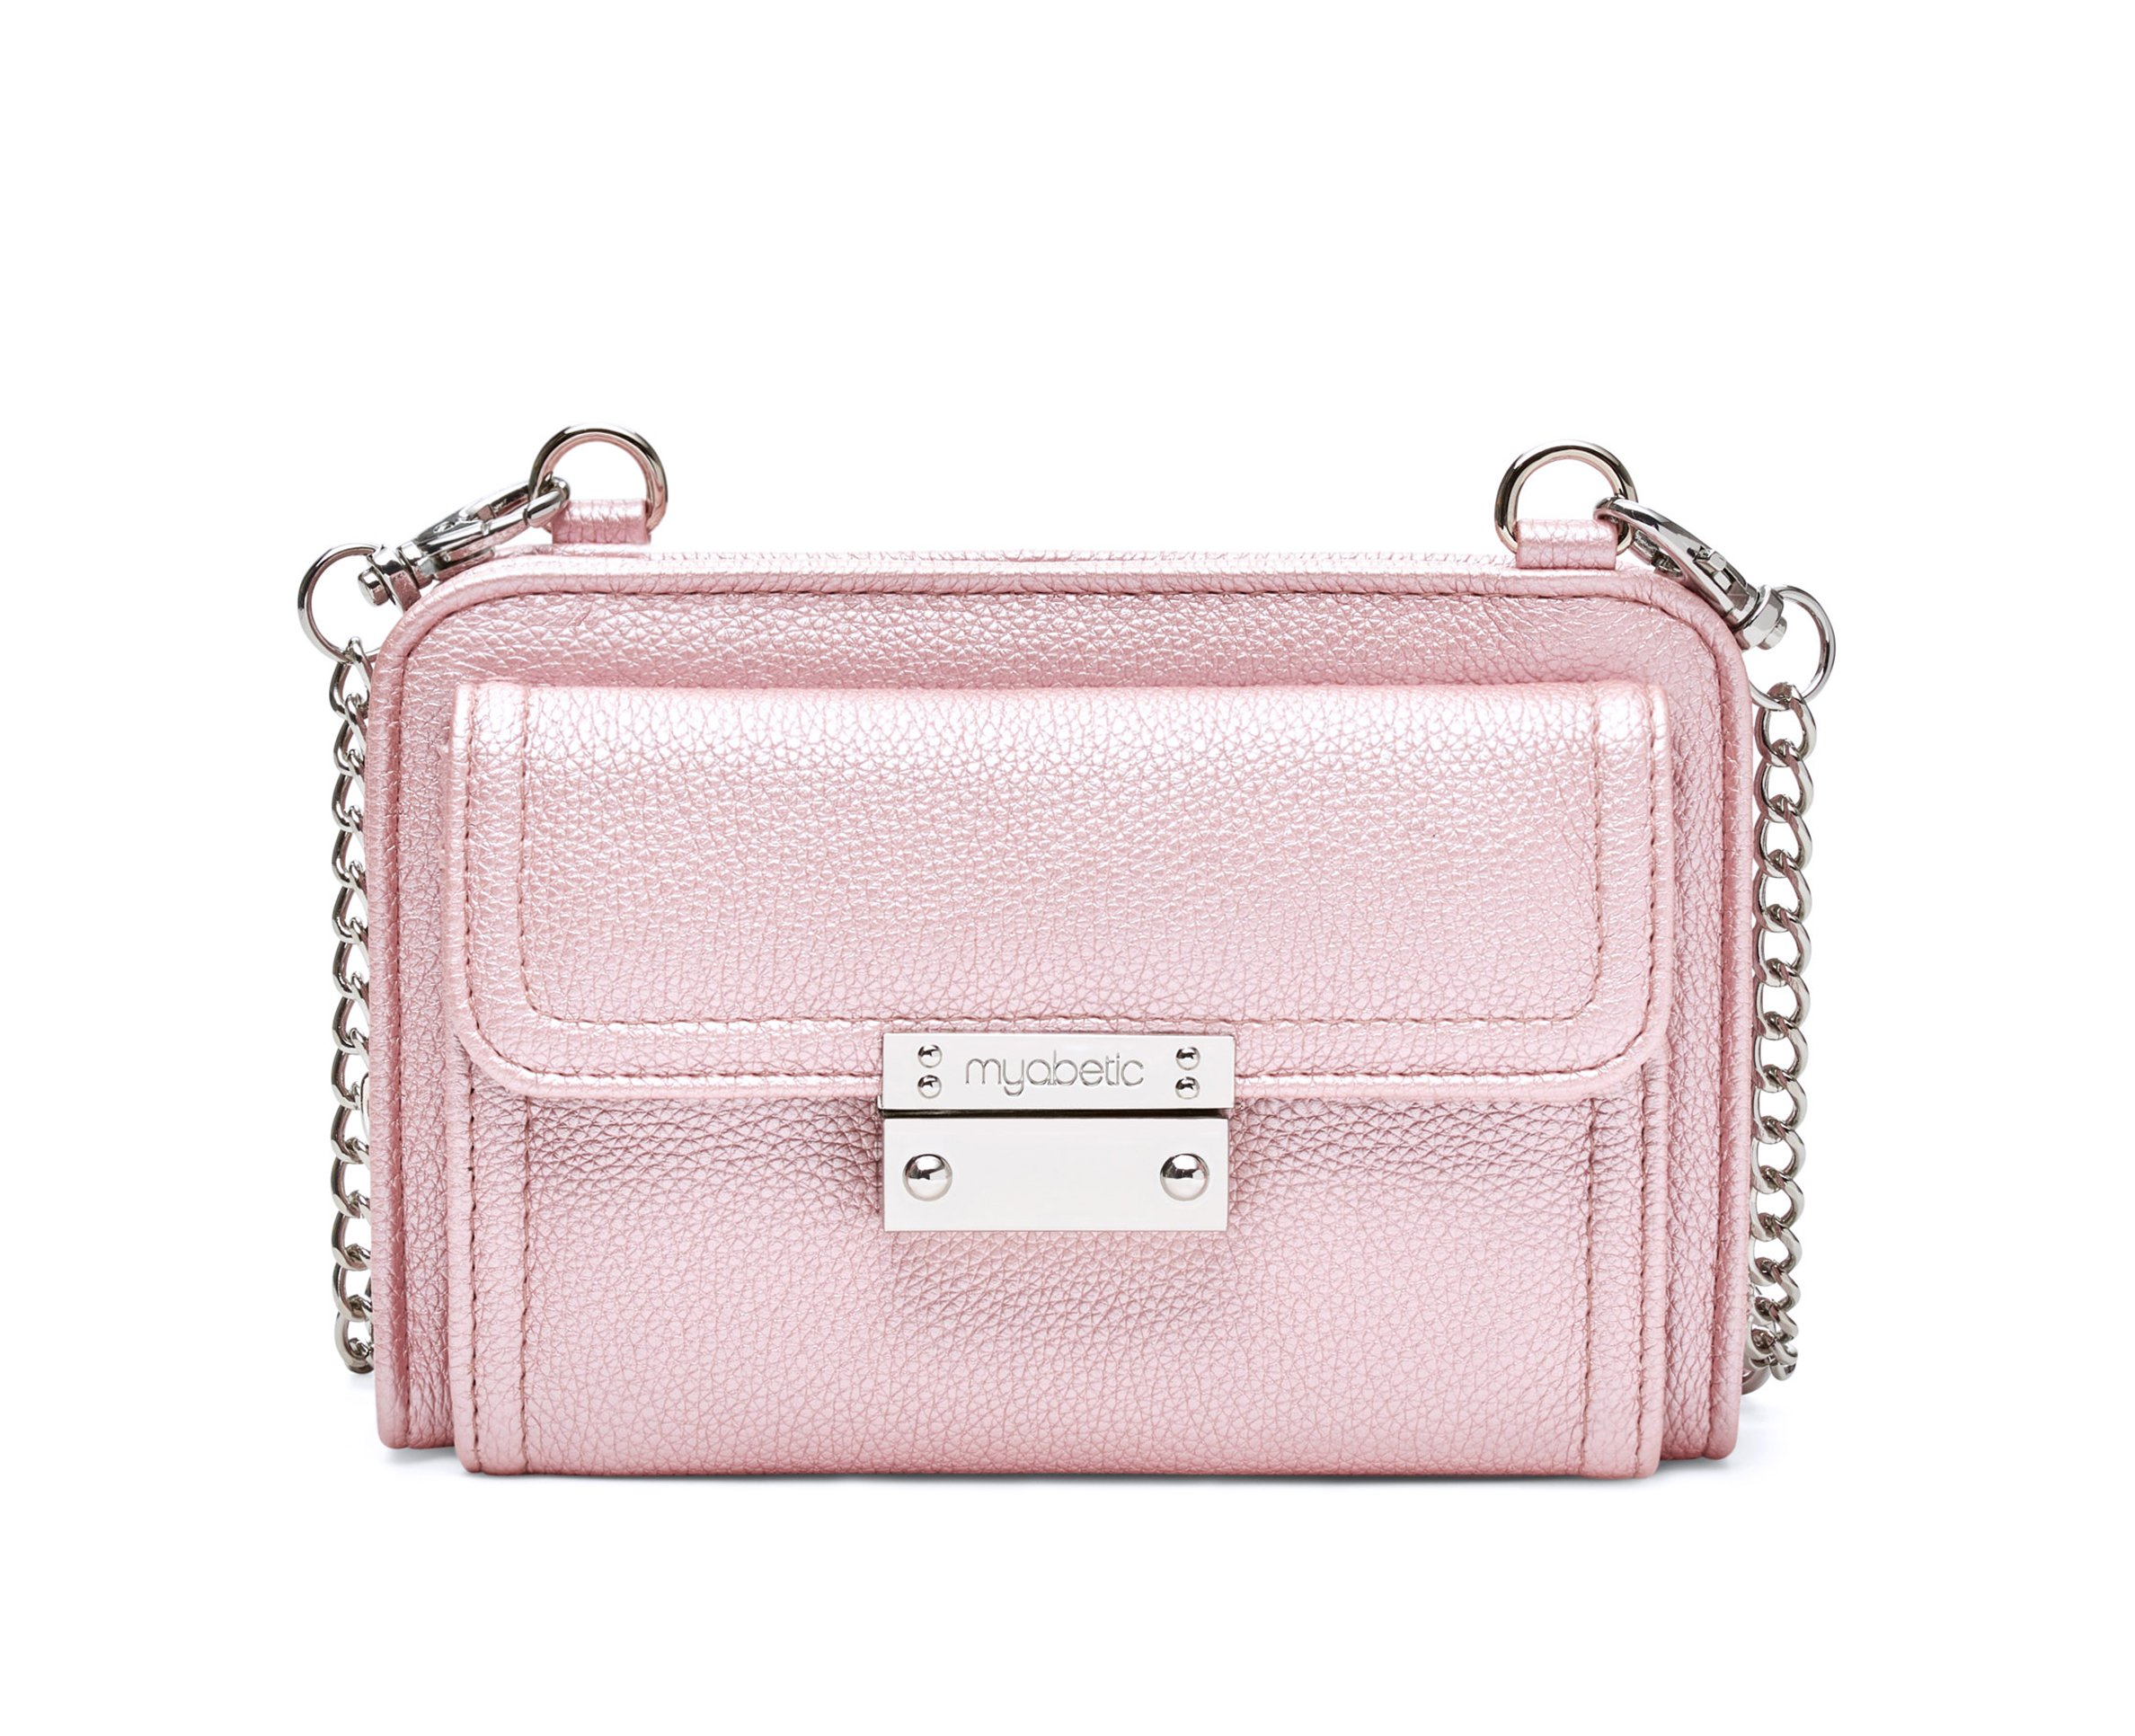 Myabetic Tina Diabetes Mini Crossbody for Glucose Meter, Test Strips, Insulin Pen or Vial, Keys, Credit Cards (Pink Frost)